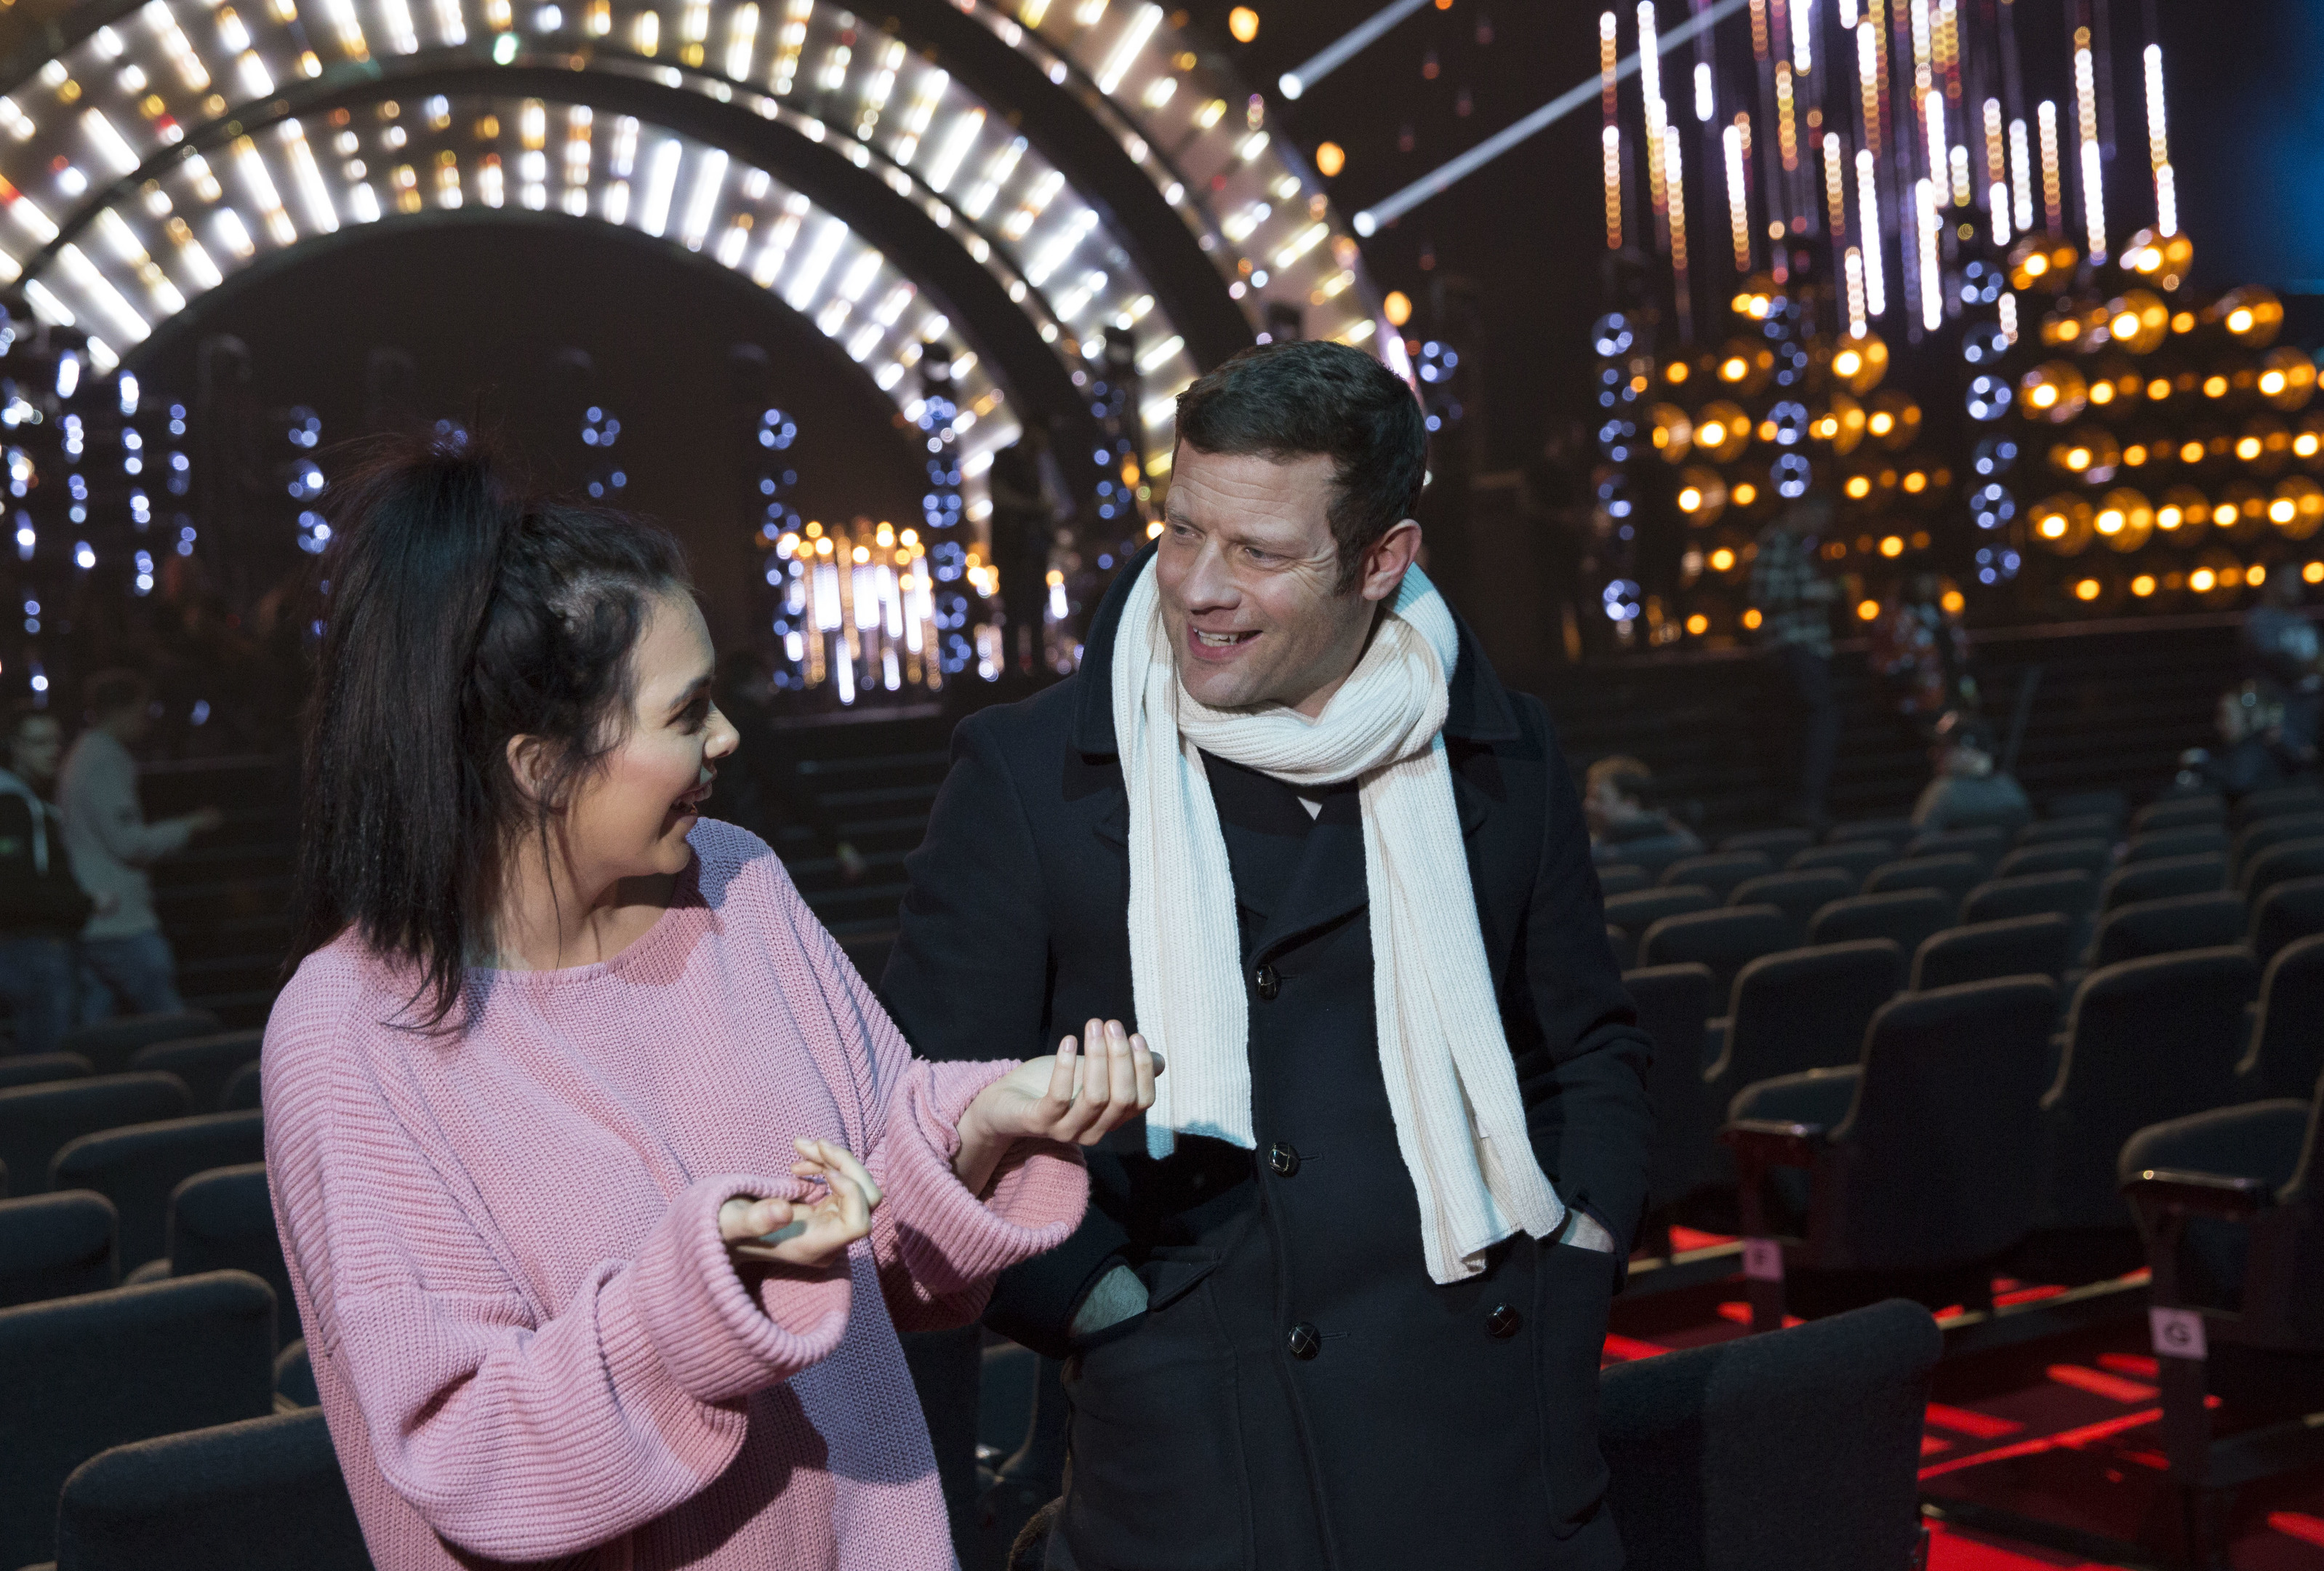 Scarlett Moffatt and Dermot O'Leary  during the National Television Awards rehearsal at The O2 Arena (Photo by John Phillips/Getty Images)